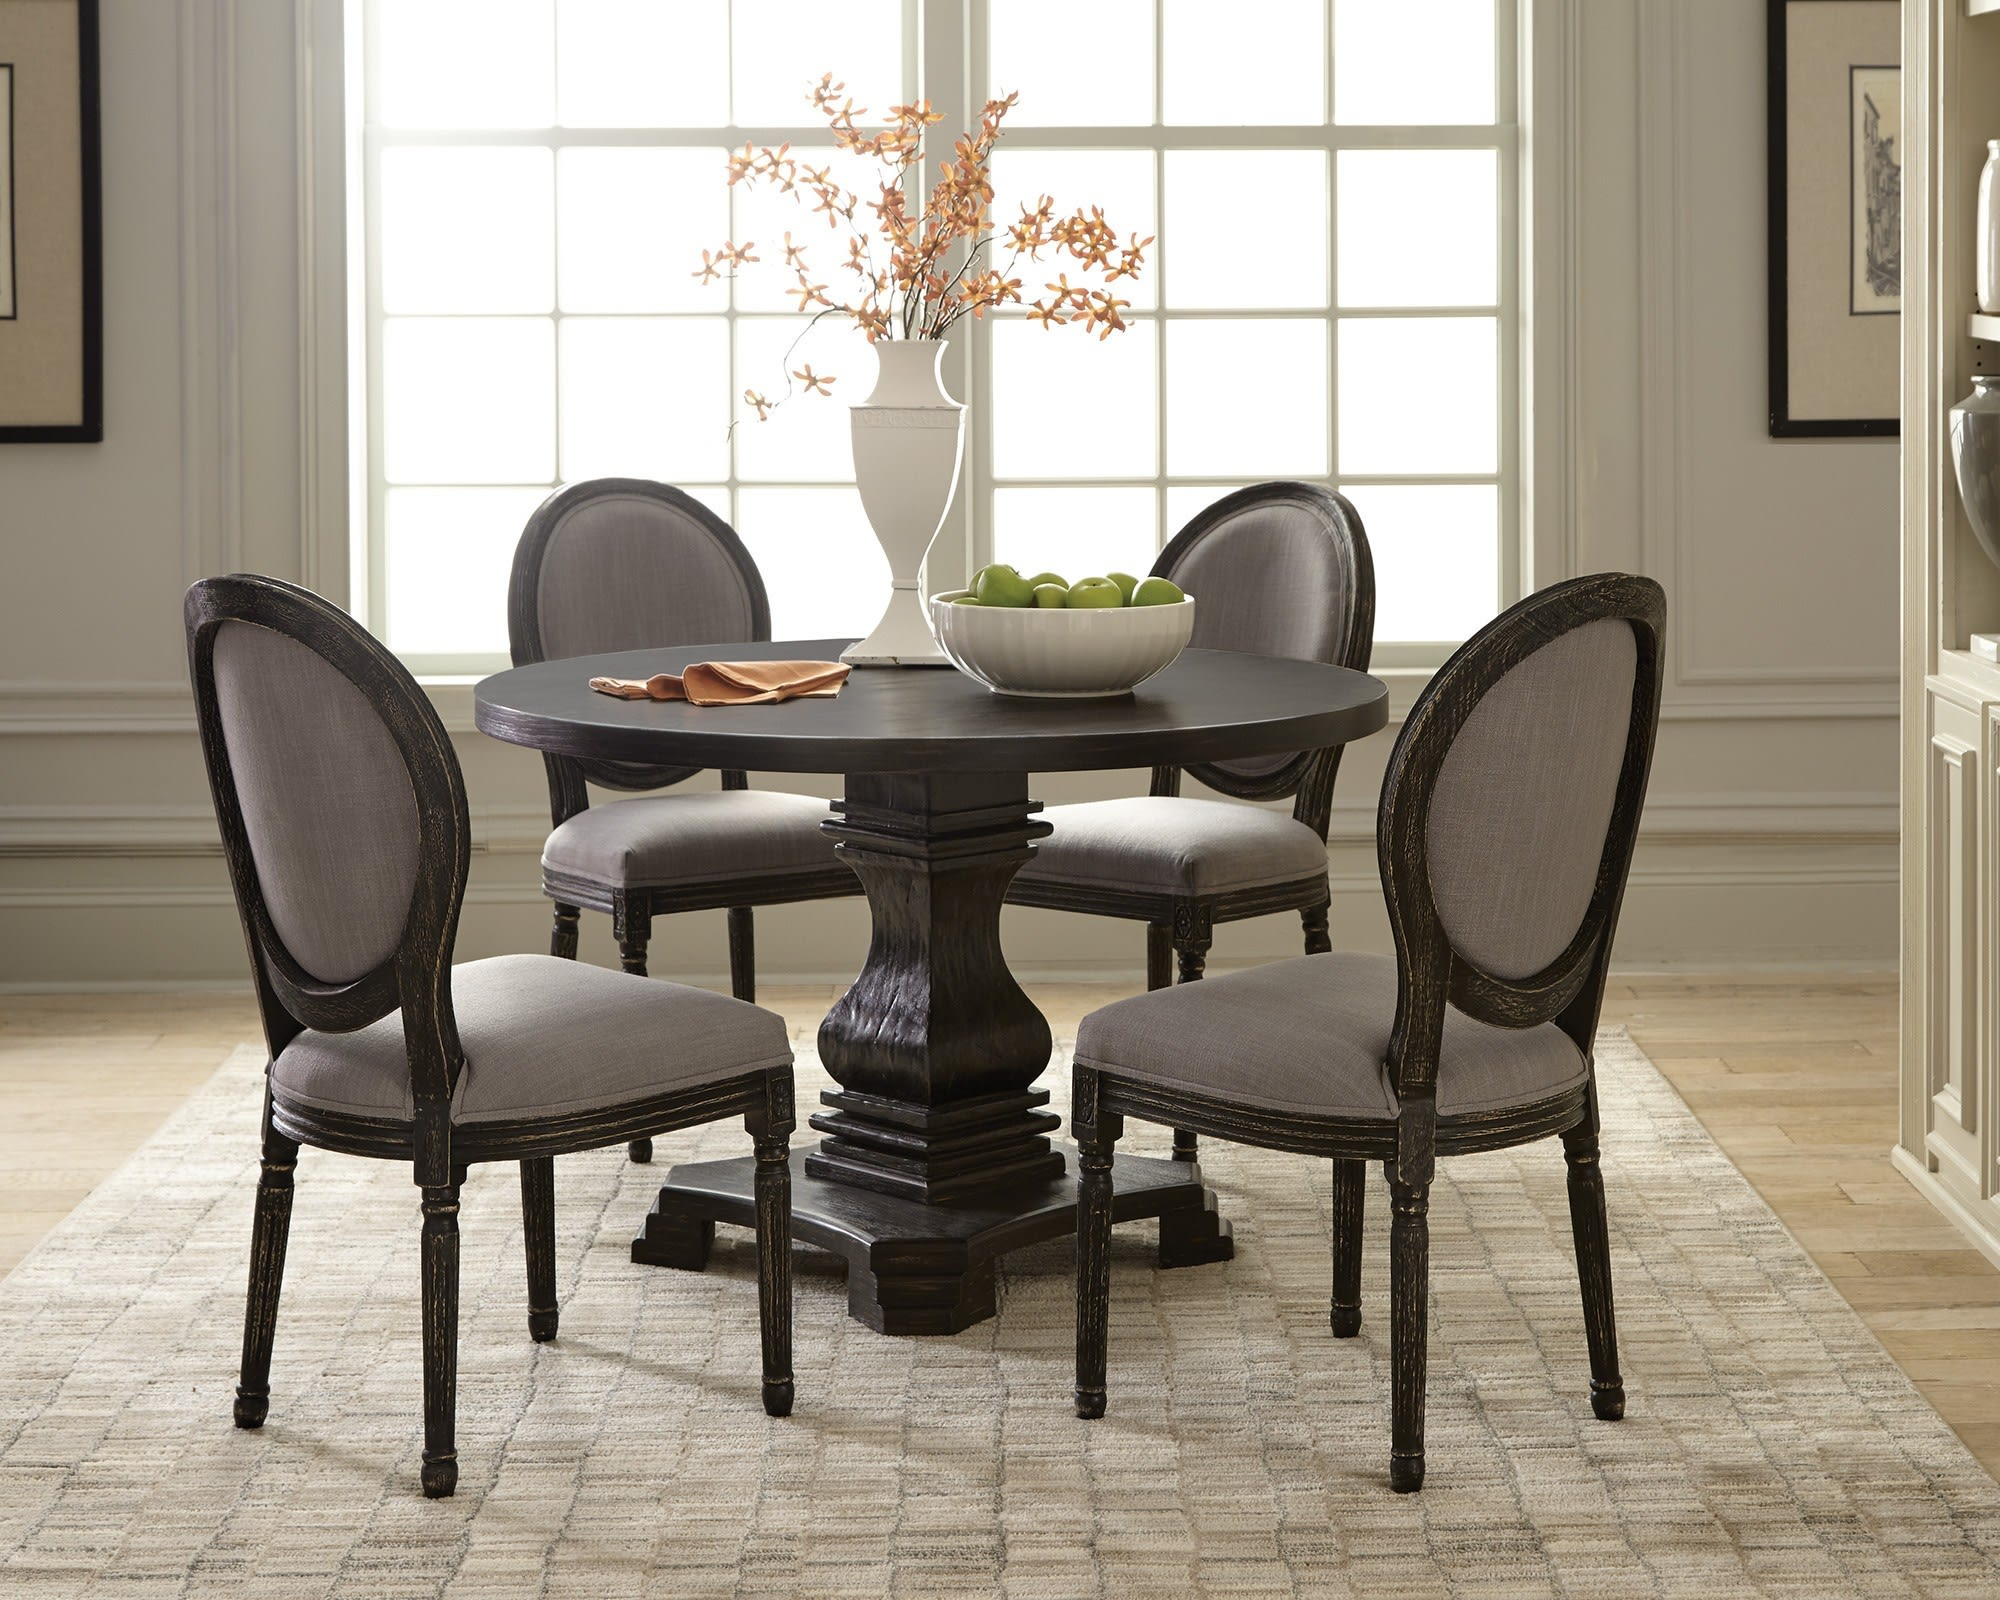 Scott Living Dayton Gray Black Round 5 Piece Dining Room Set